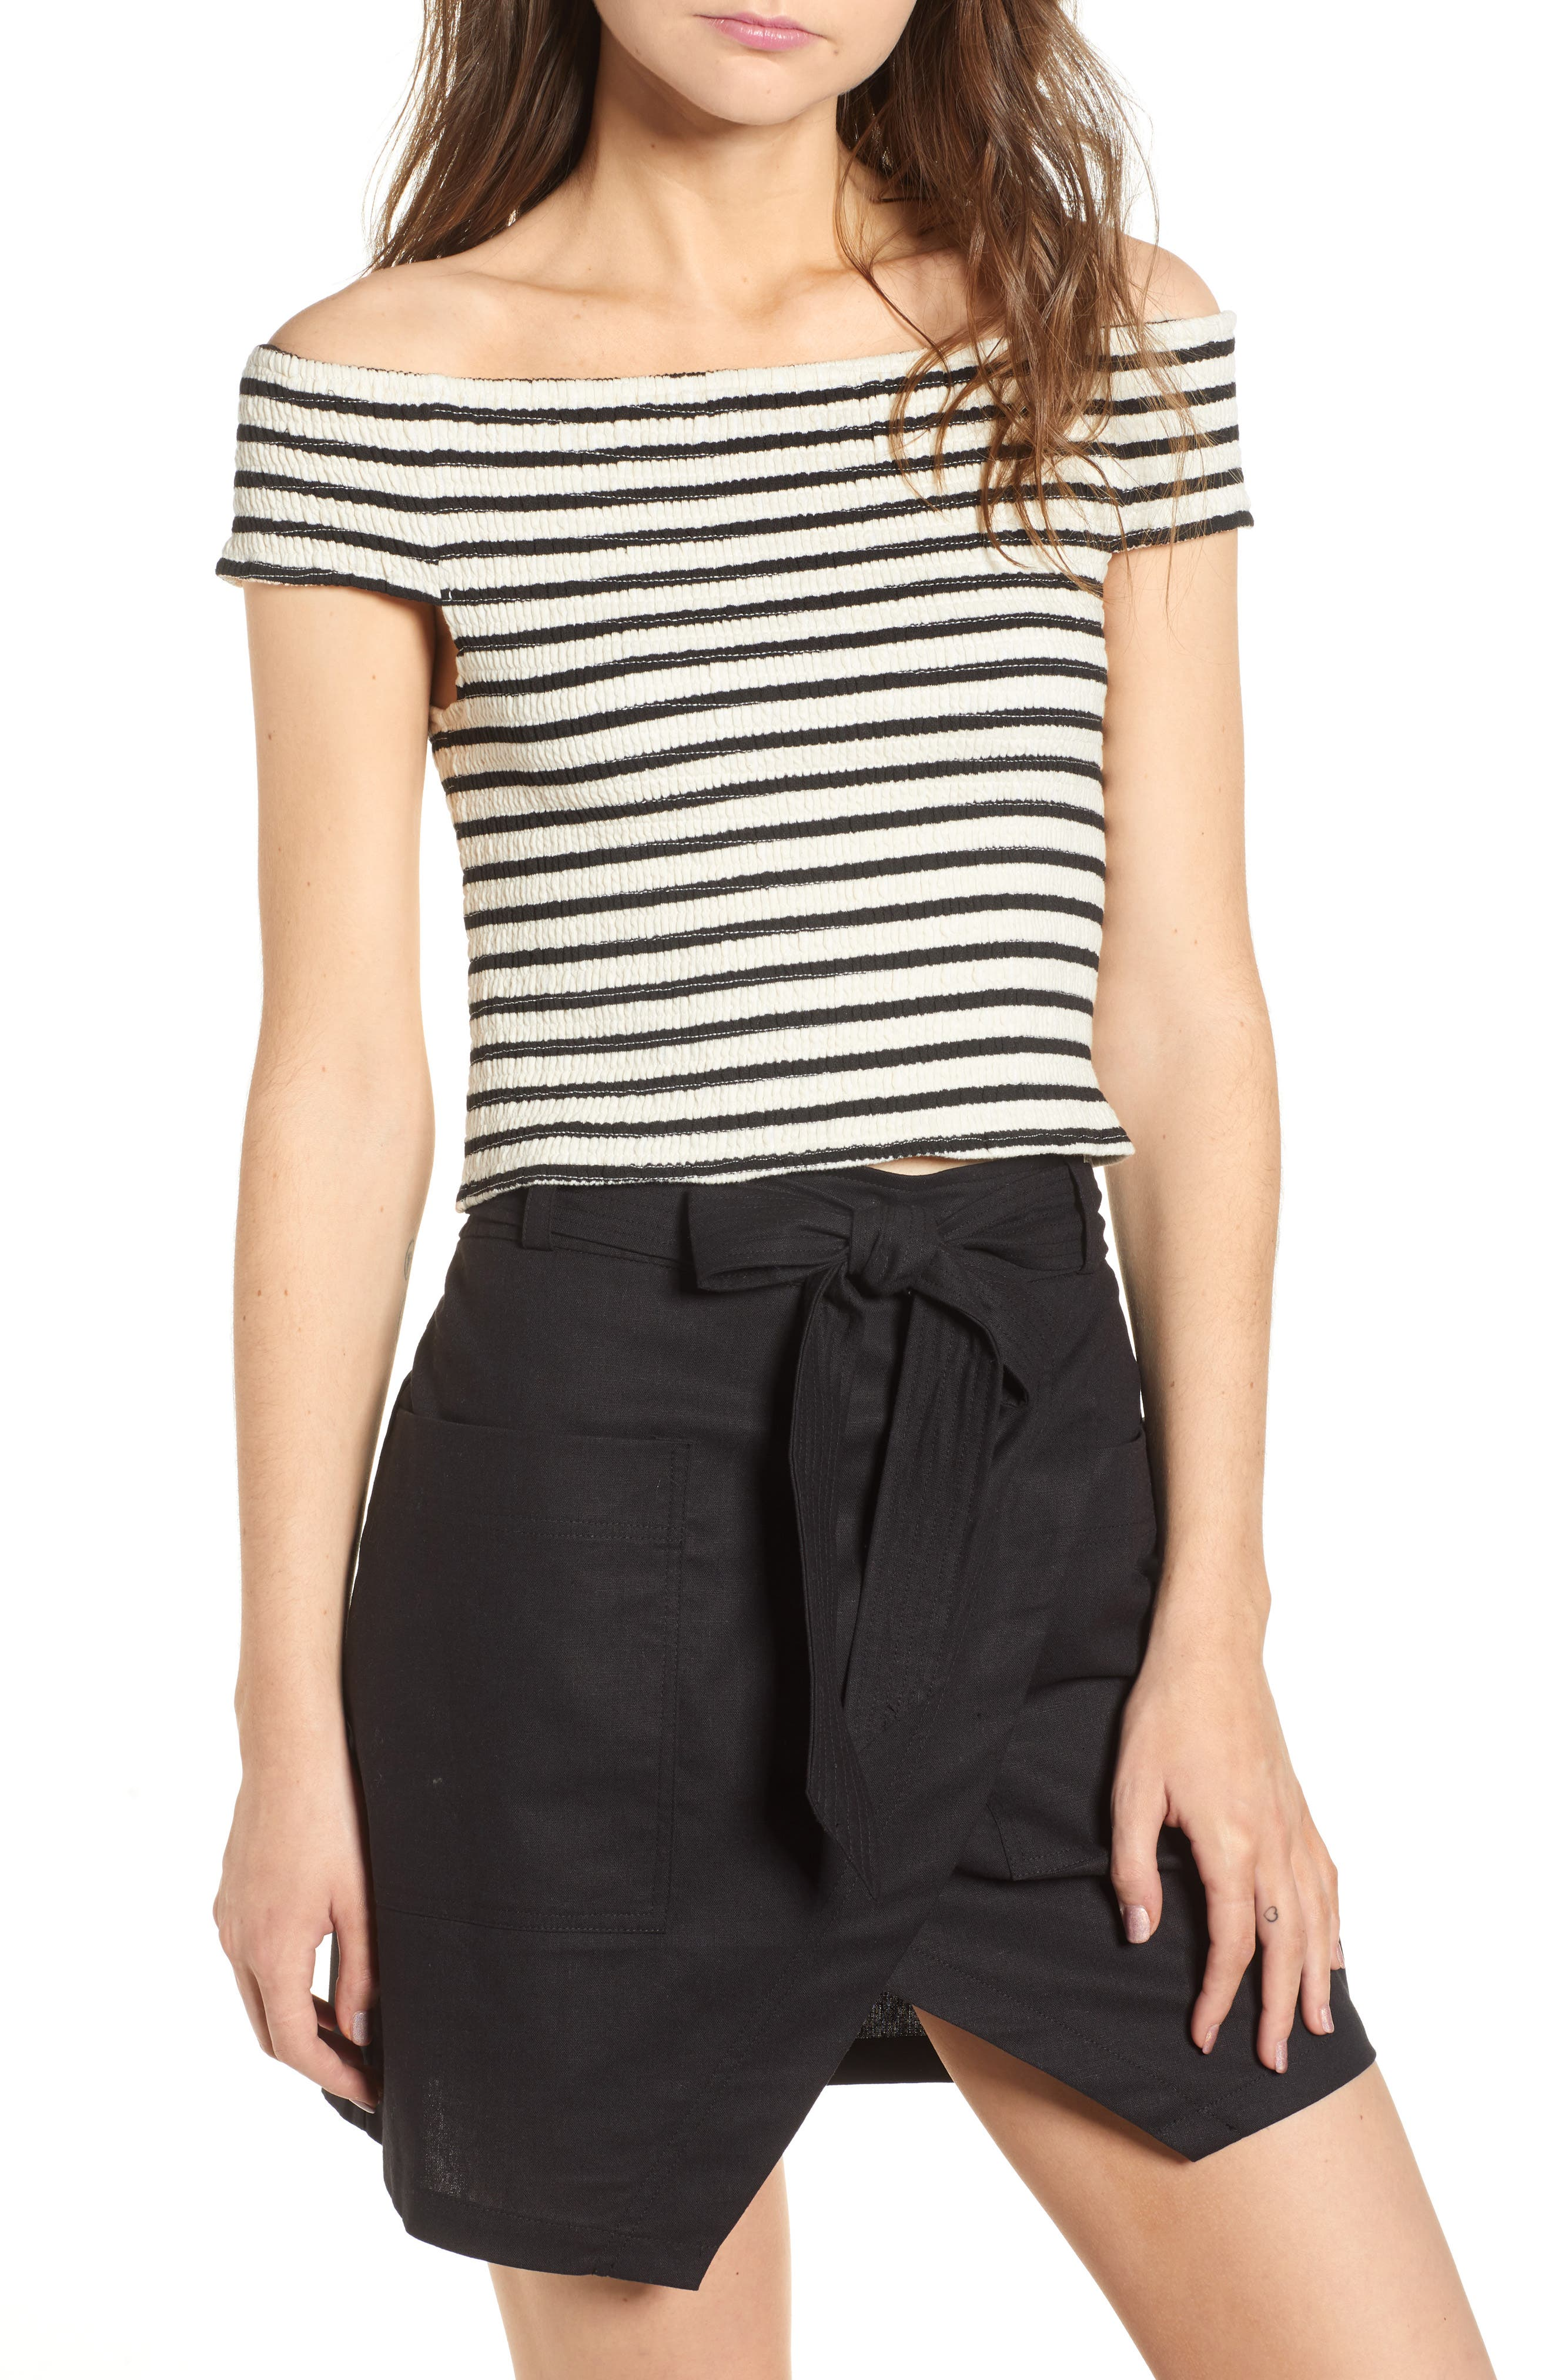 Bishop + Young Stripe Off the Shoulder Top,                             Main thumbnail 1, color,                             BLACK STRIPE